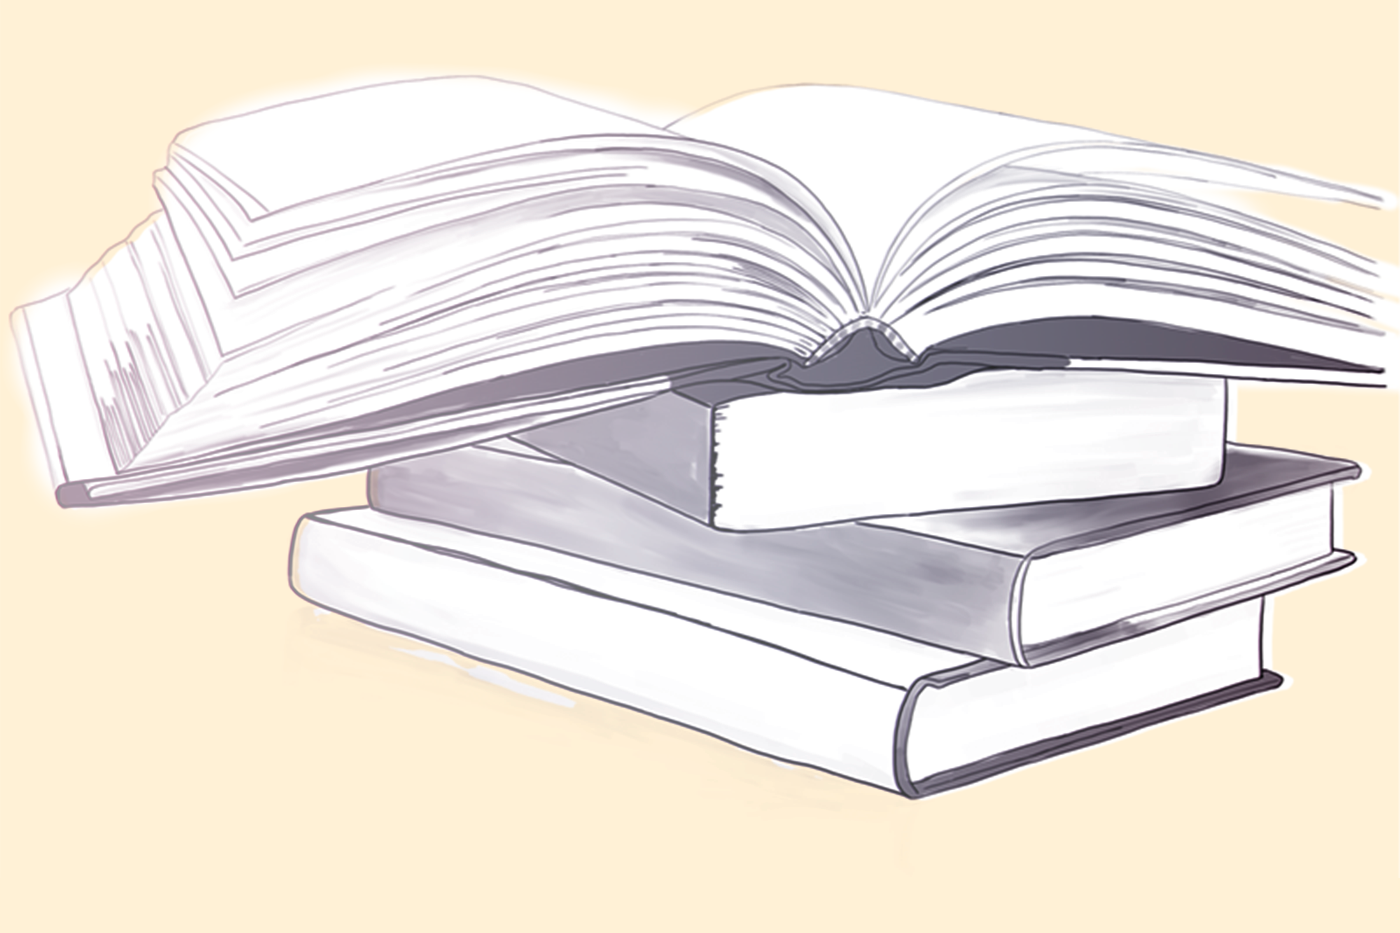 an illustration depicts a stack of books with the top book open wide